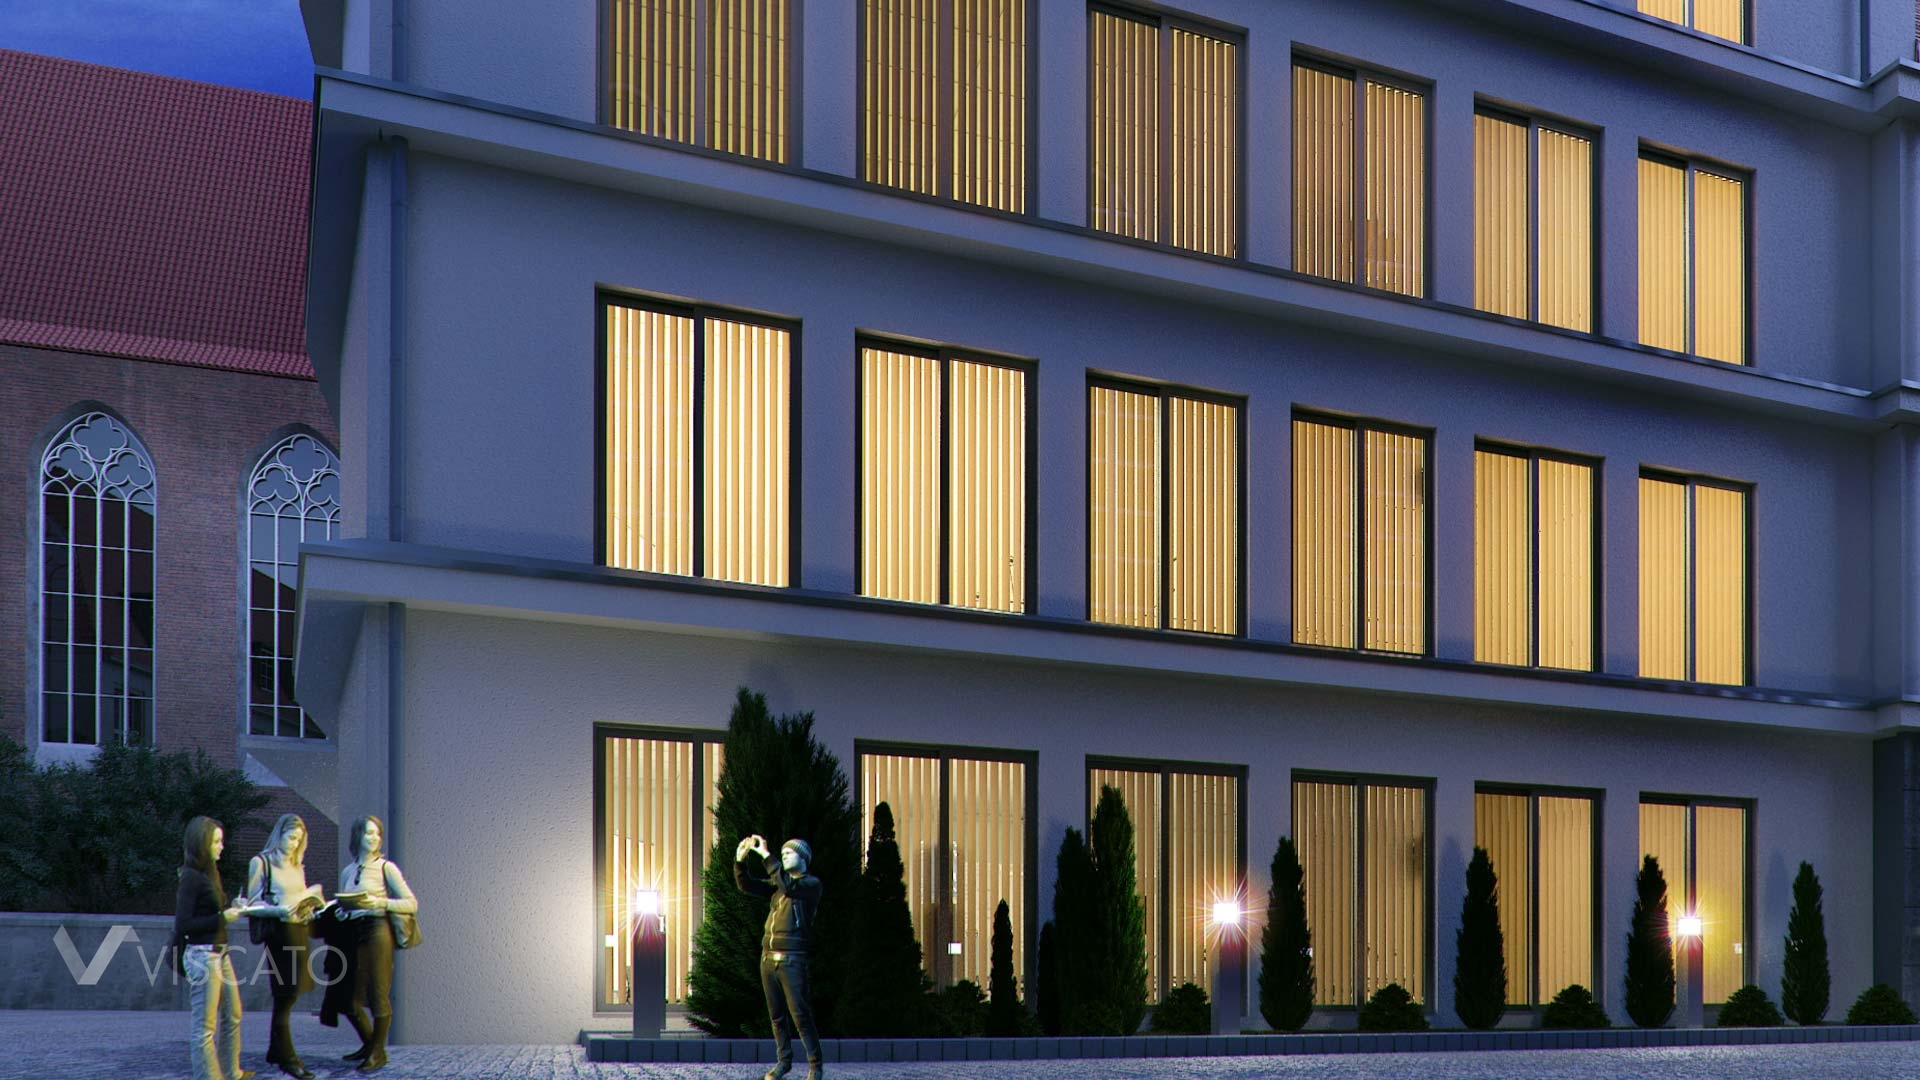 3D visualisation of a renovated old building- detail